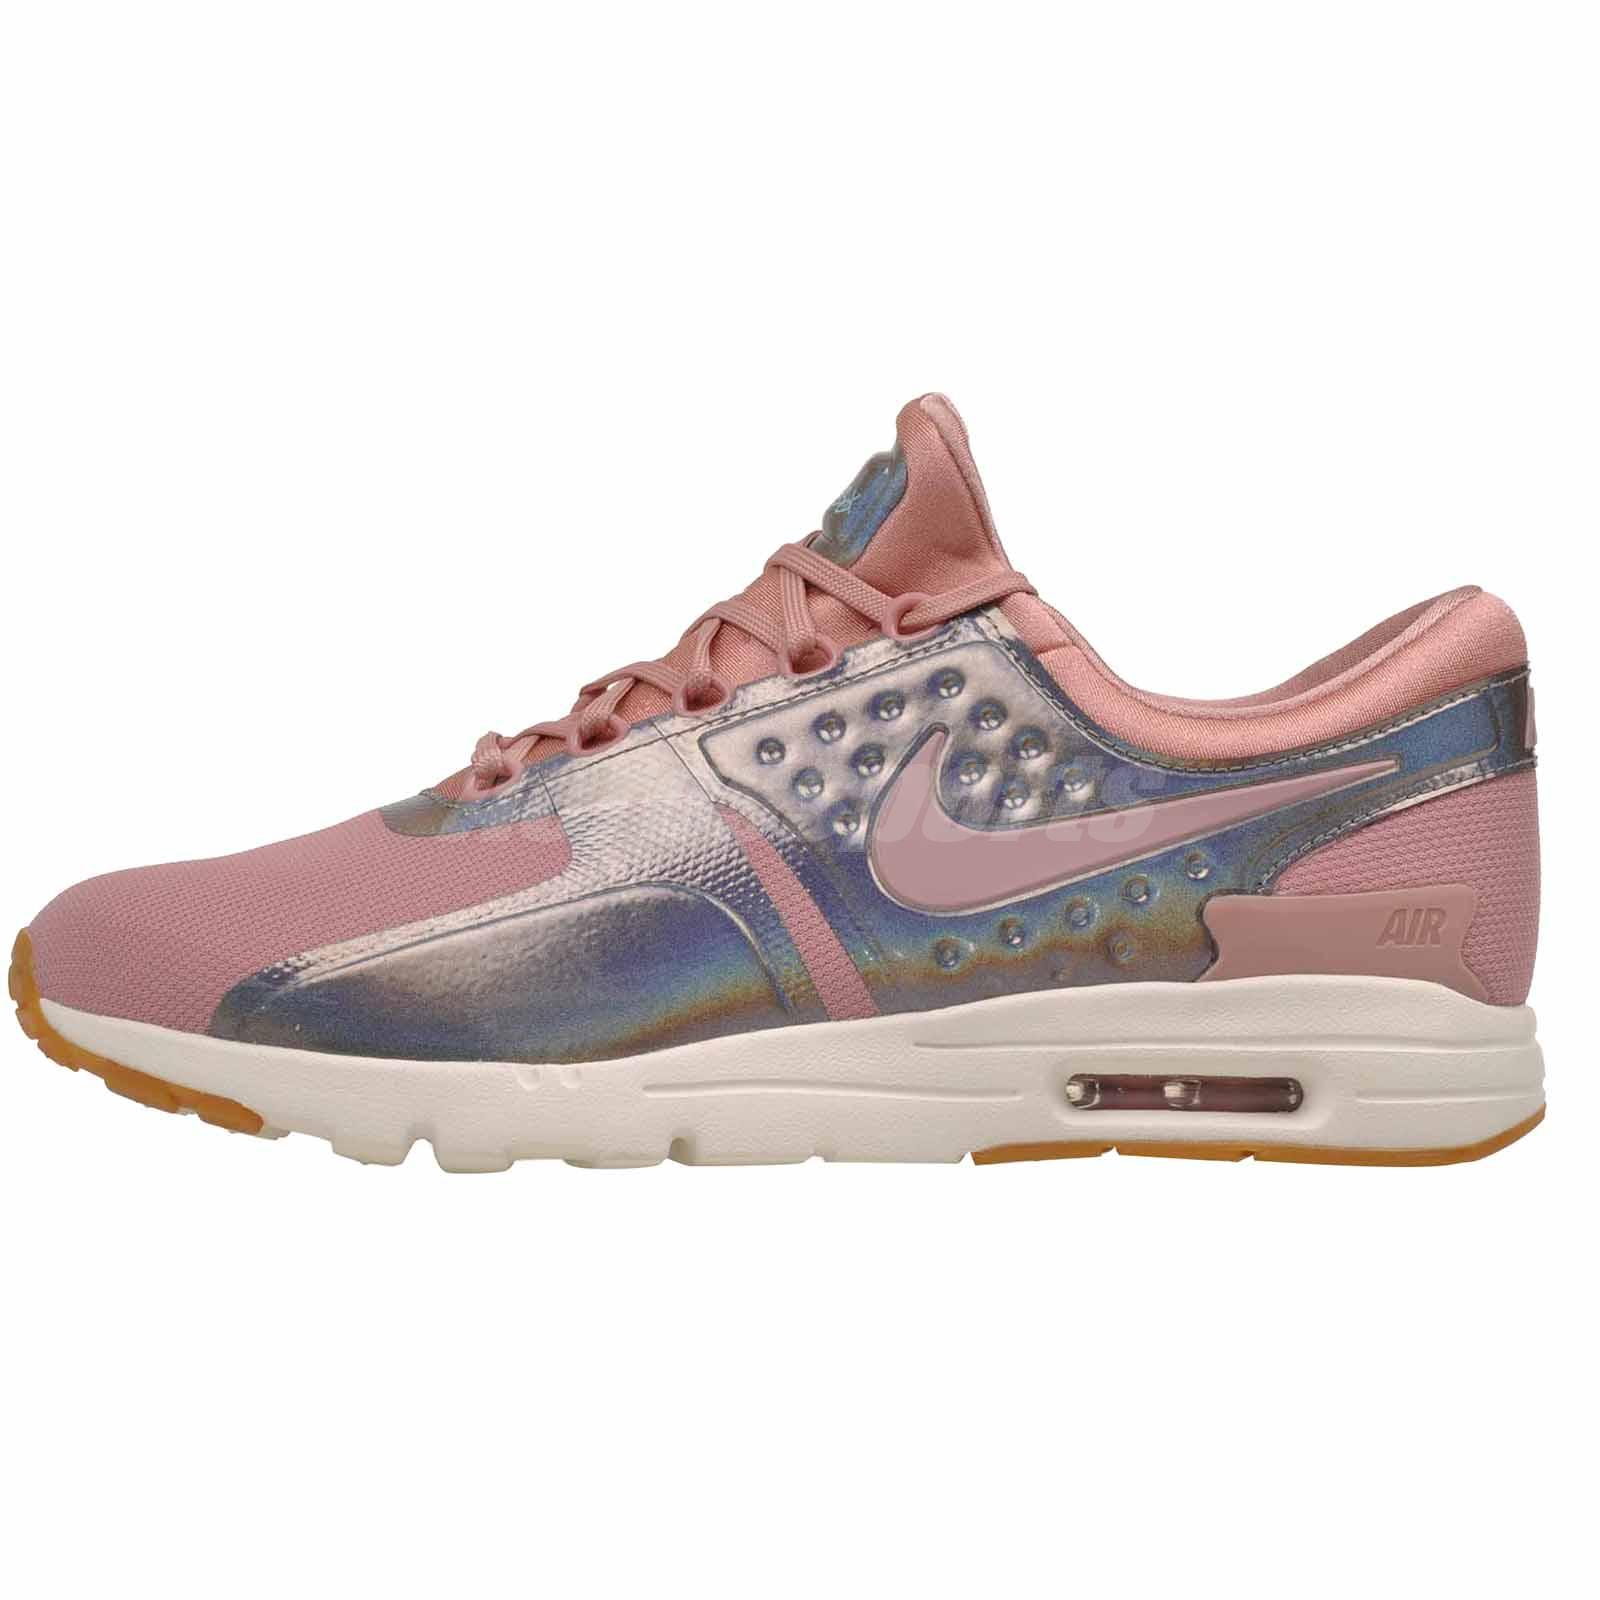 buy good timeless design exquisite design Details about Nike W Air Max Zero SE Running Womens Shoes NWOB 896199-600